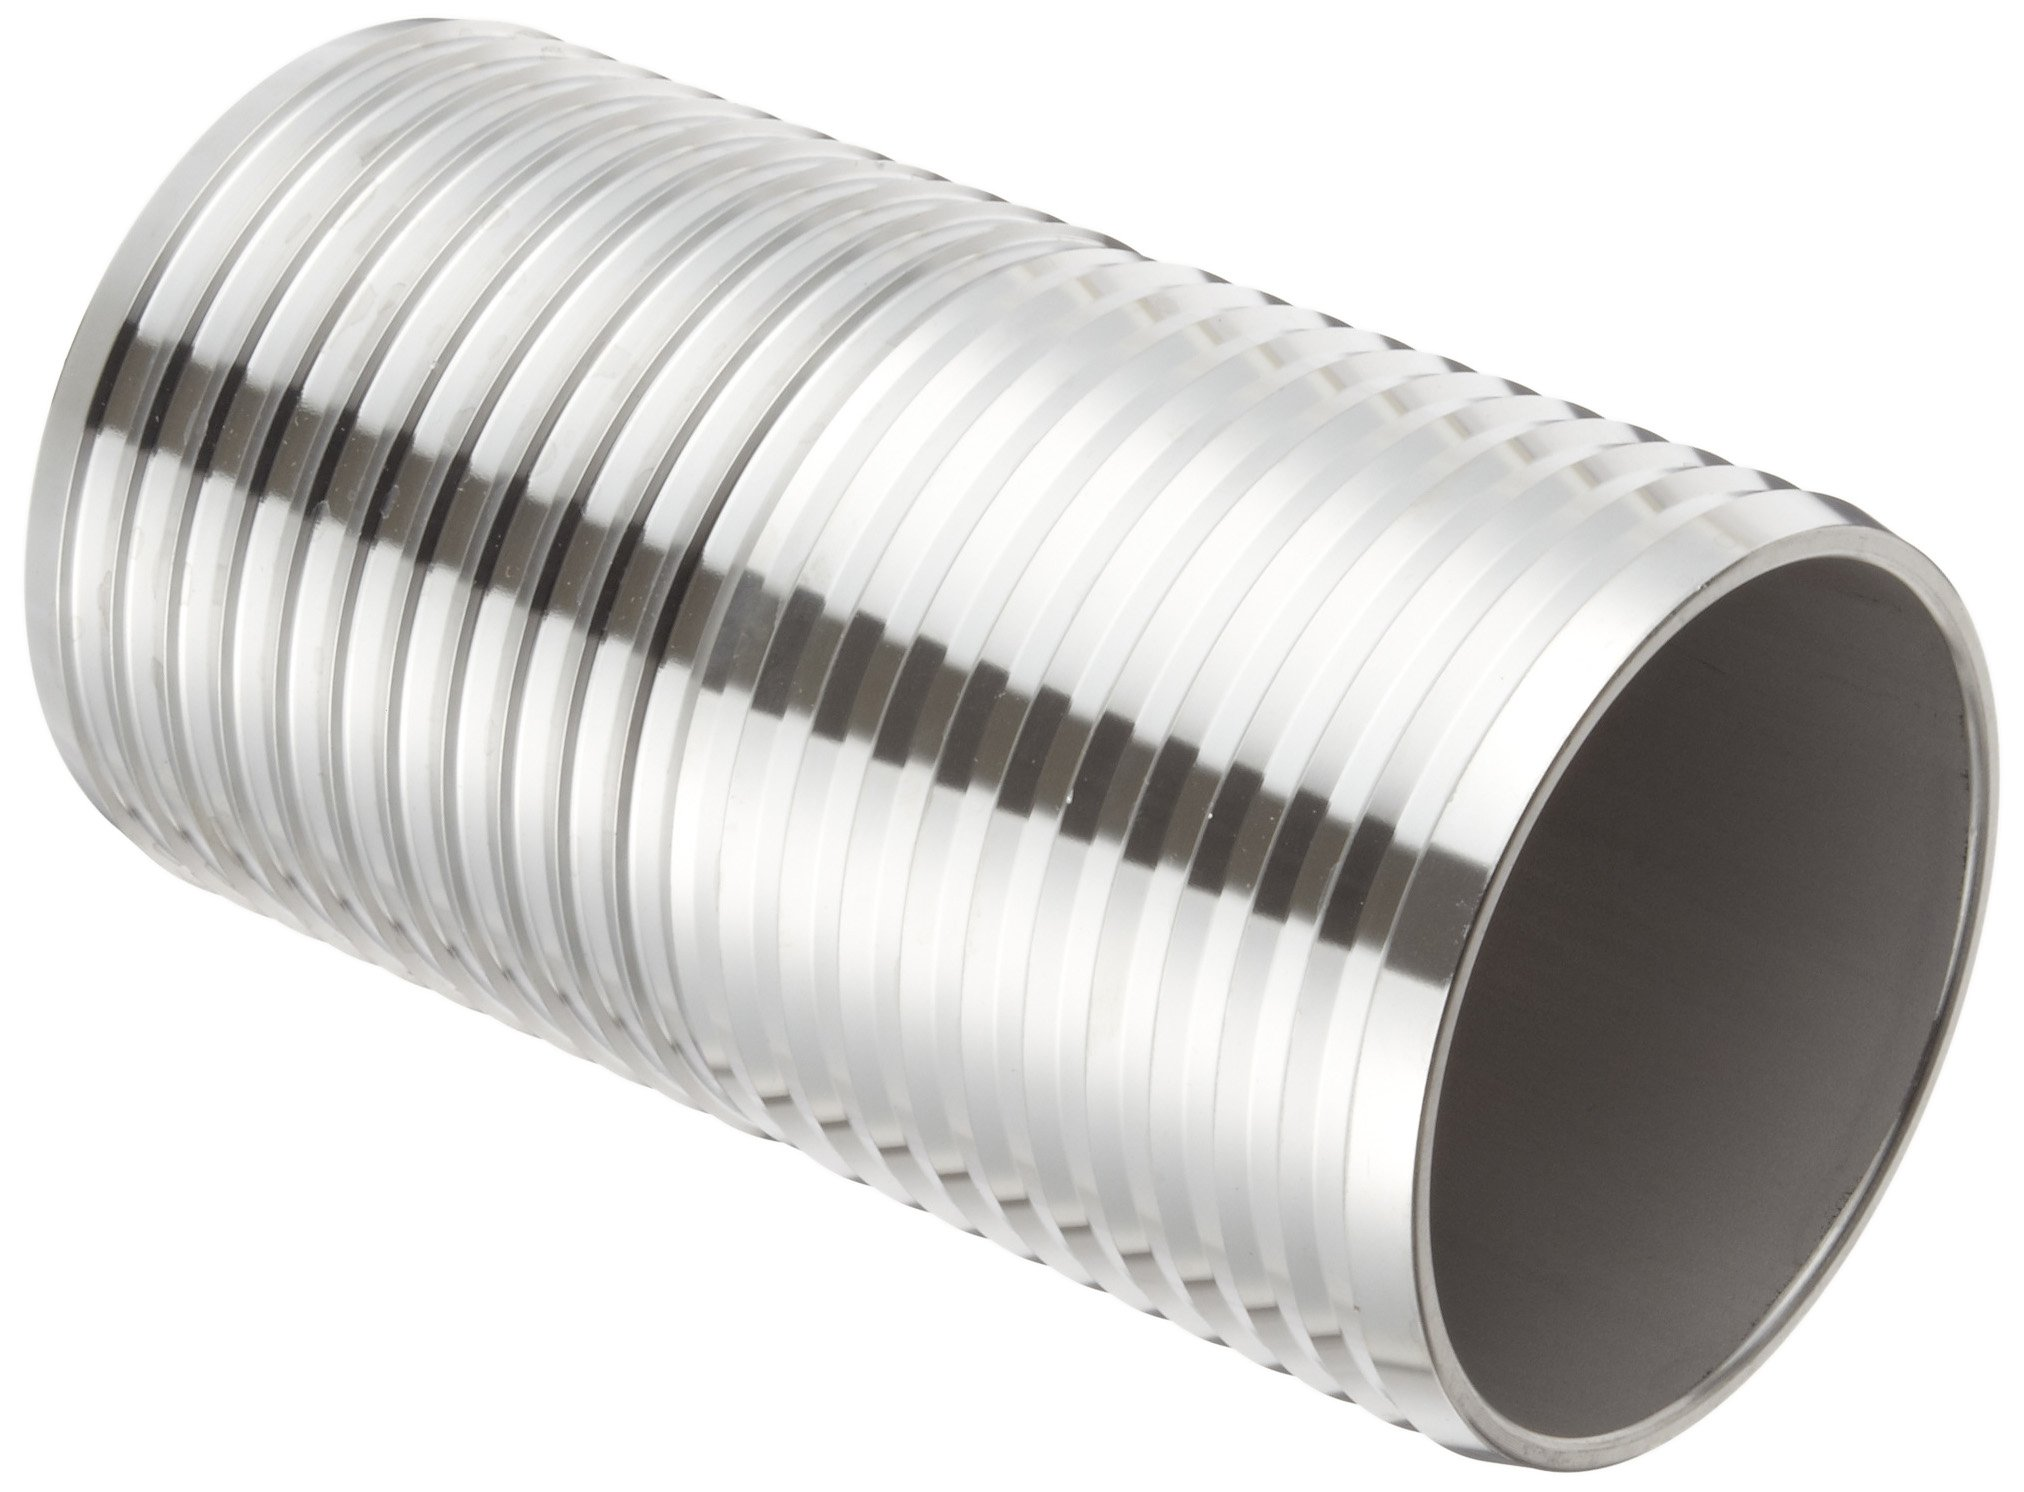 Dixon RDM46 Stainless Steel 316 Shank/Water Fitting, Mender, 4'' Hose ID Barbed, 7-3/8'' Length